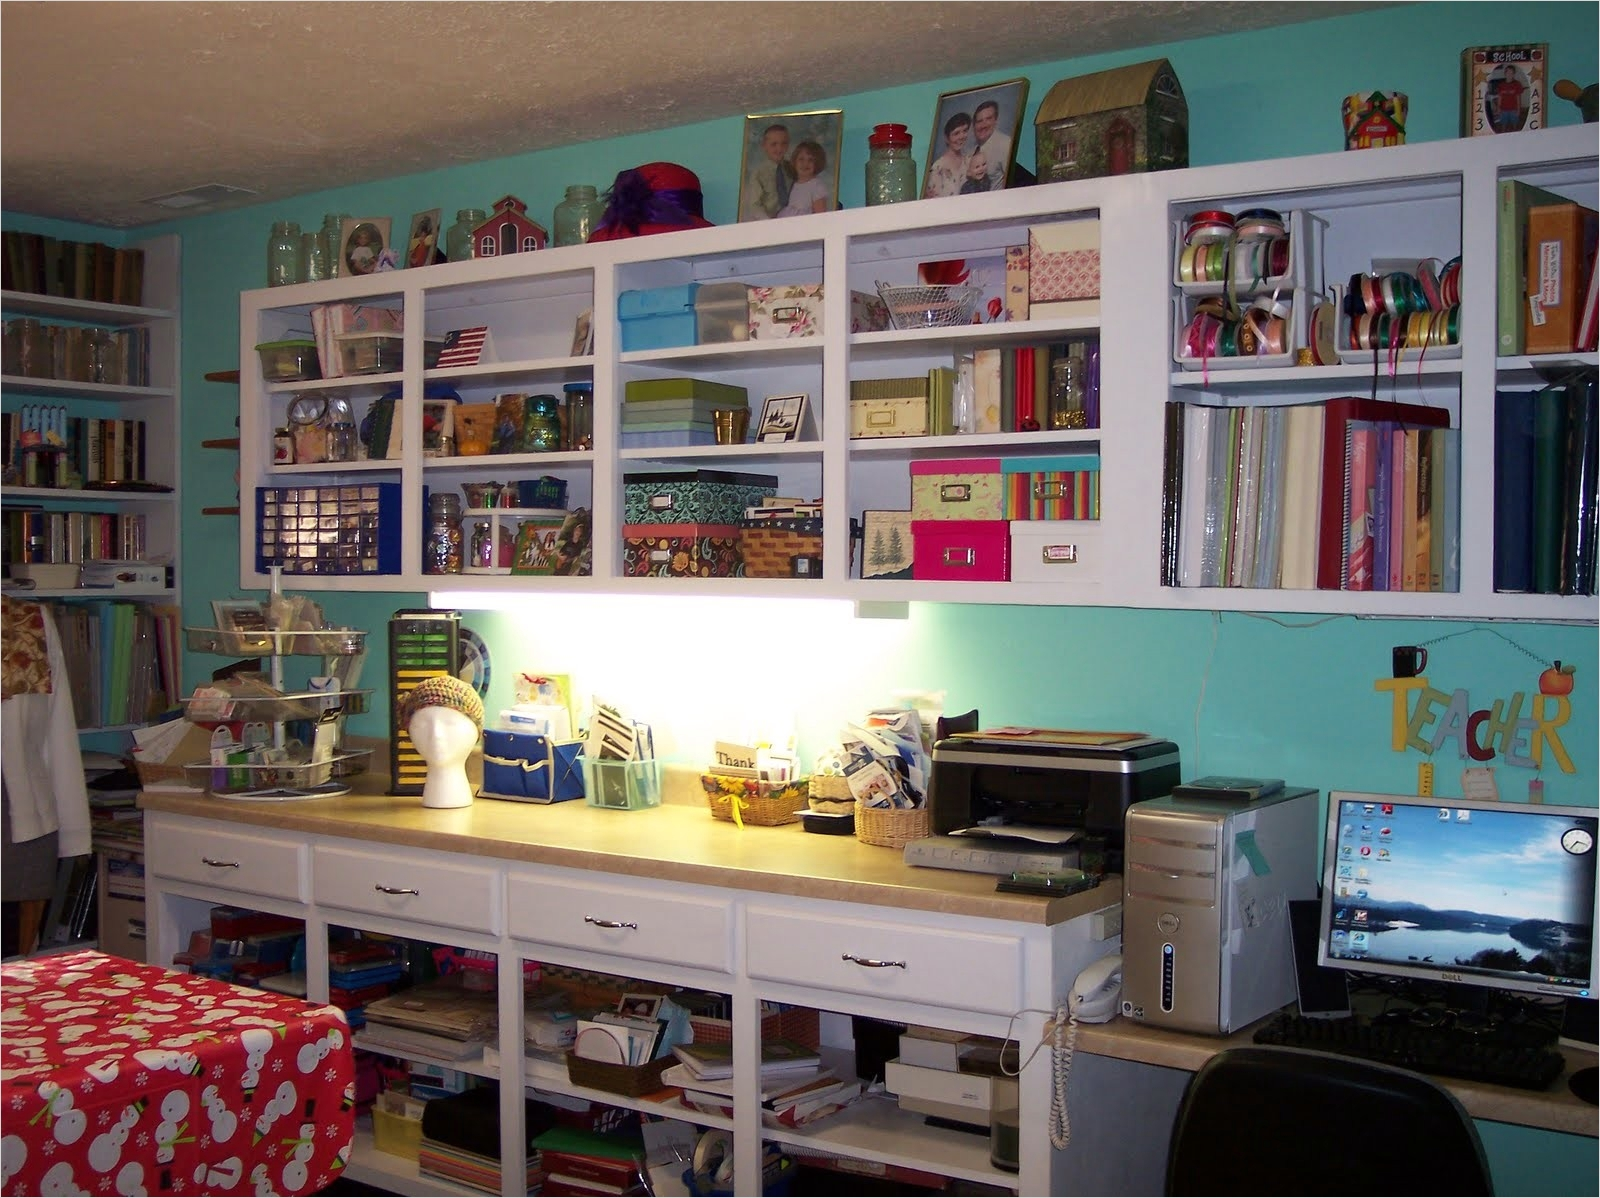 Craft Room Wall Shelving 69 40 Creative Shelving Ideas for Small Craft Room the Urban Interior 2